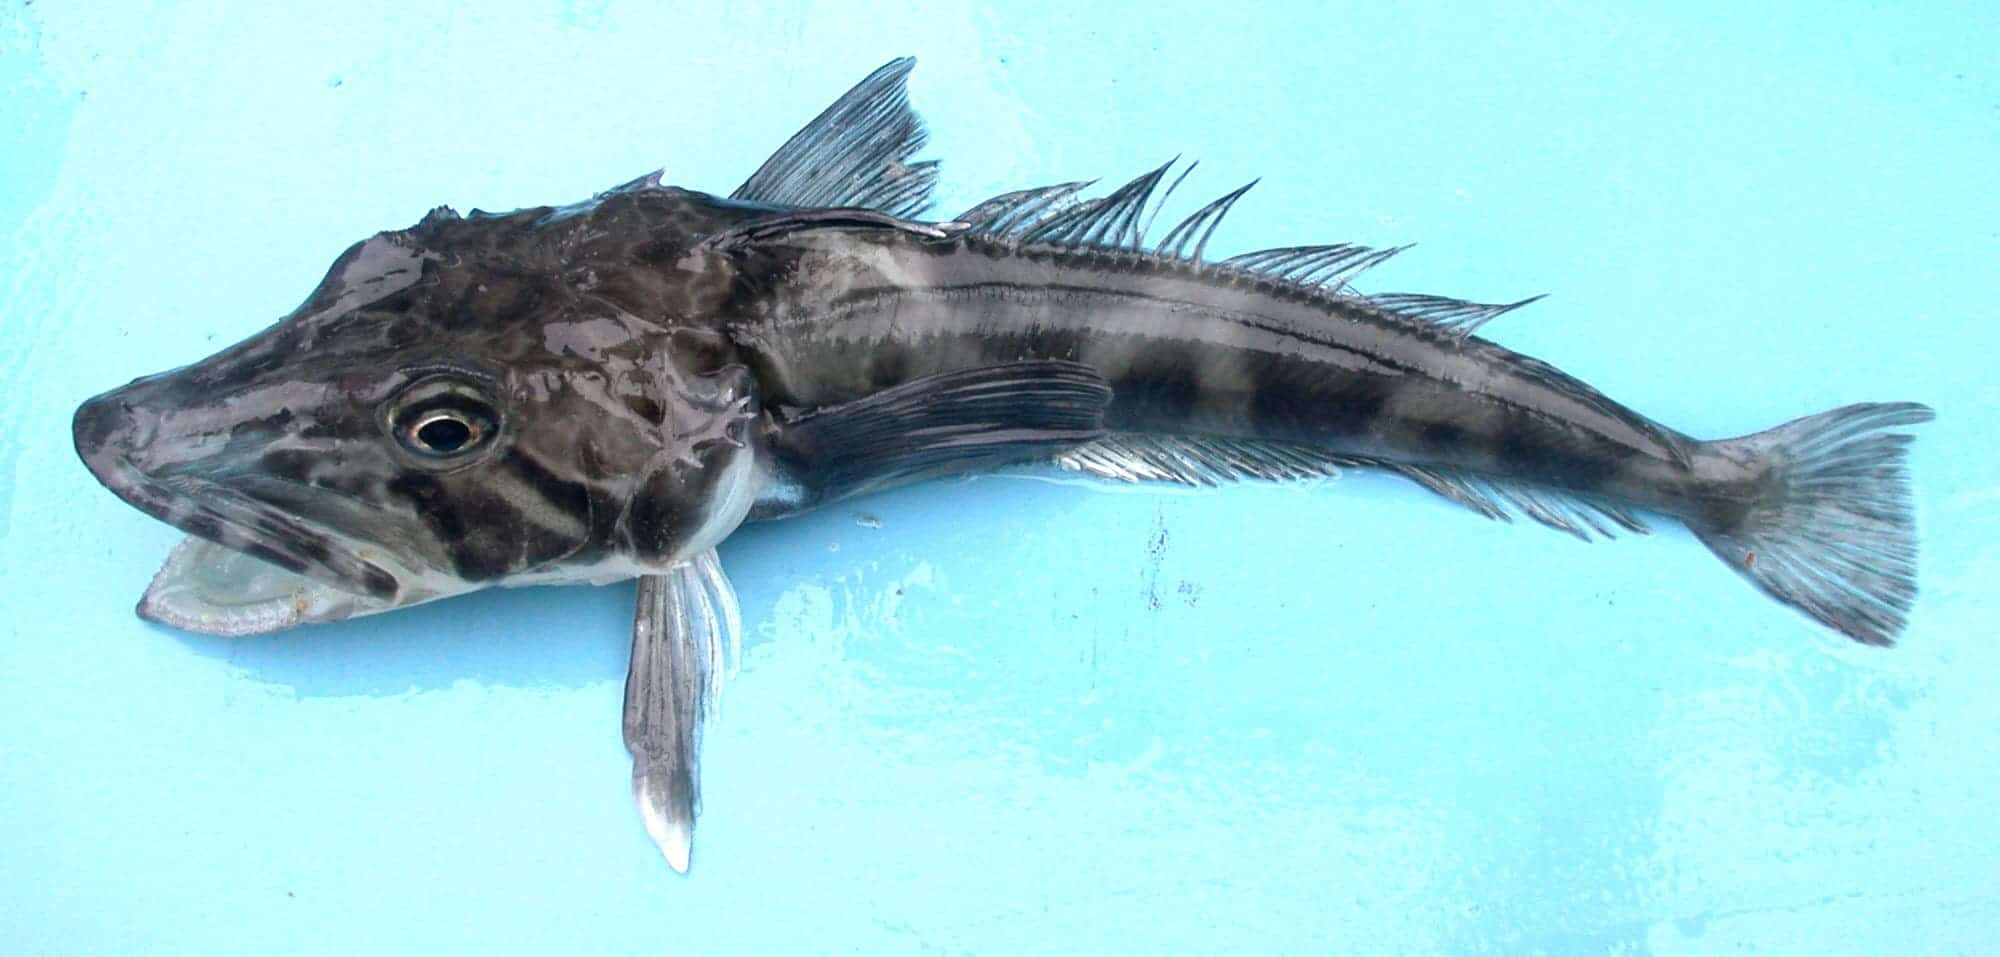 You might be eating icefish instead. Image credits: Valerie Loeb